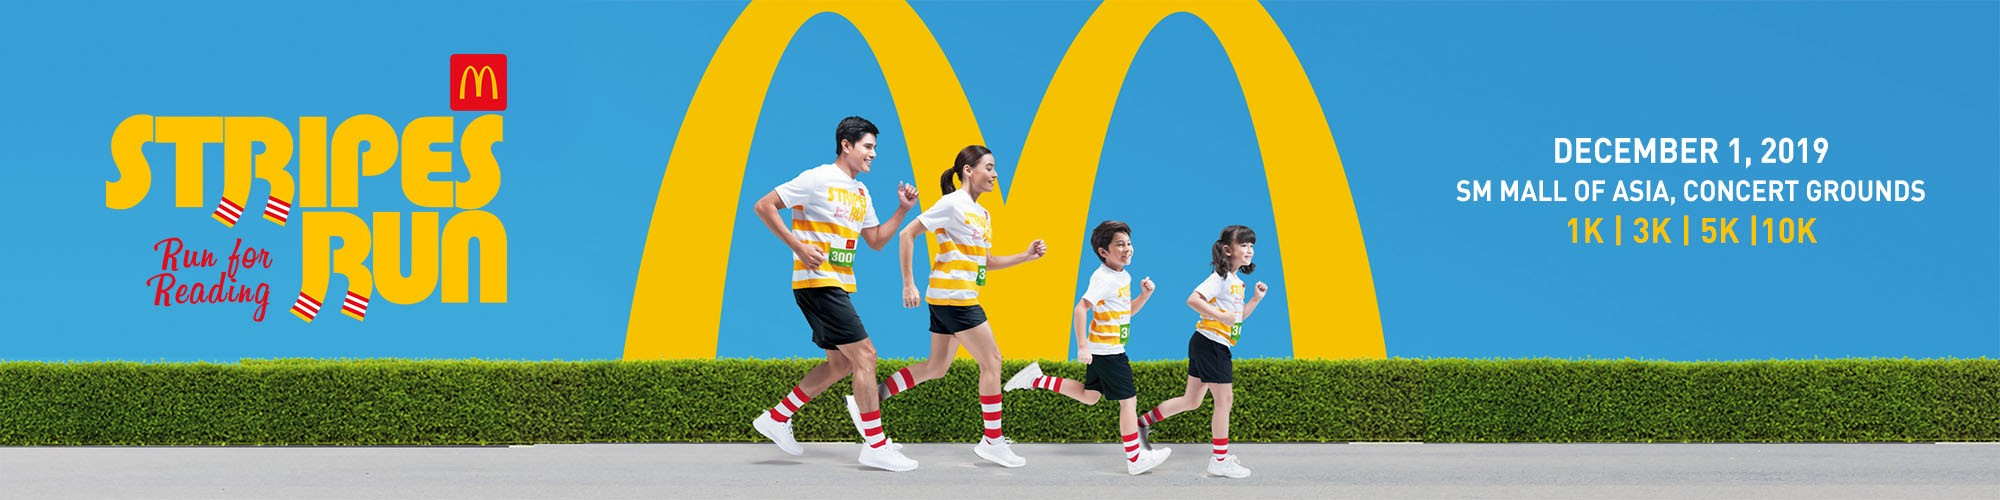 McDonald's Stripes Run 2019